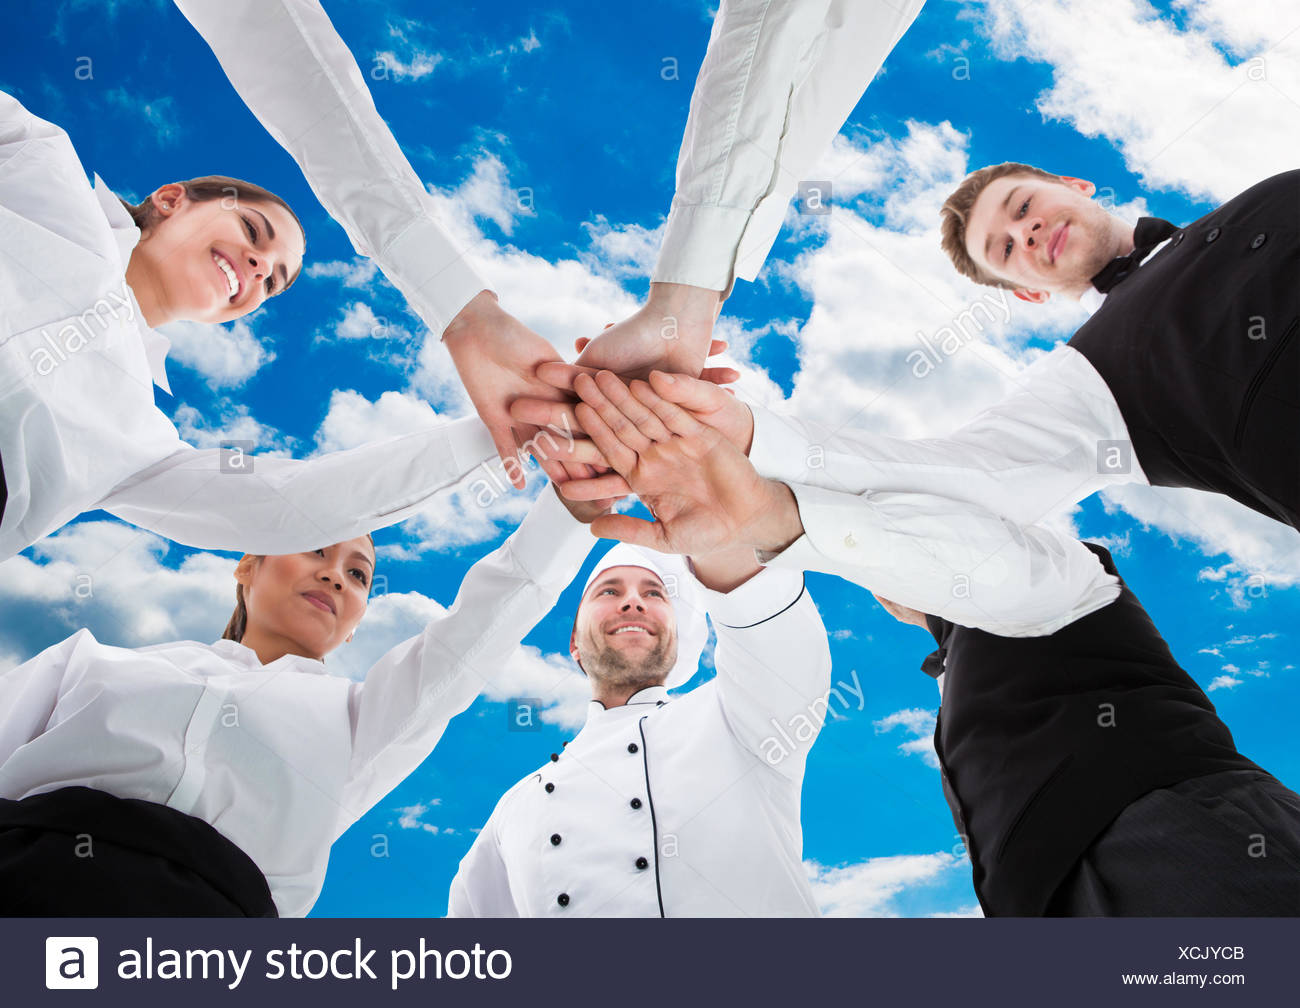 Waiters and waitresses stacking hands - Stock Image